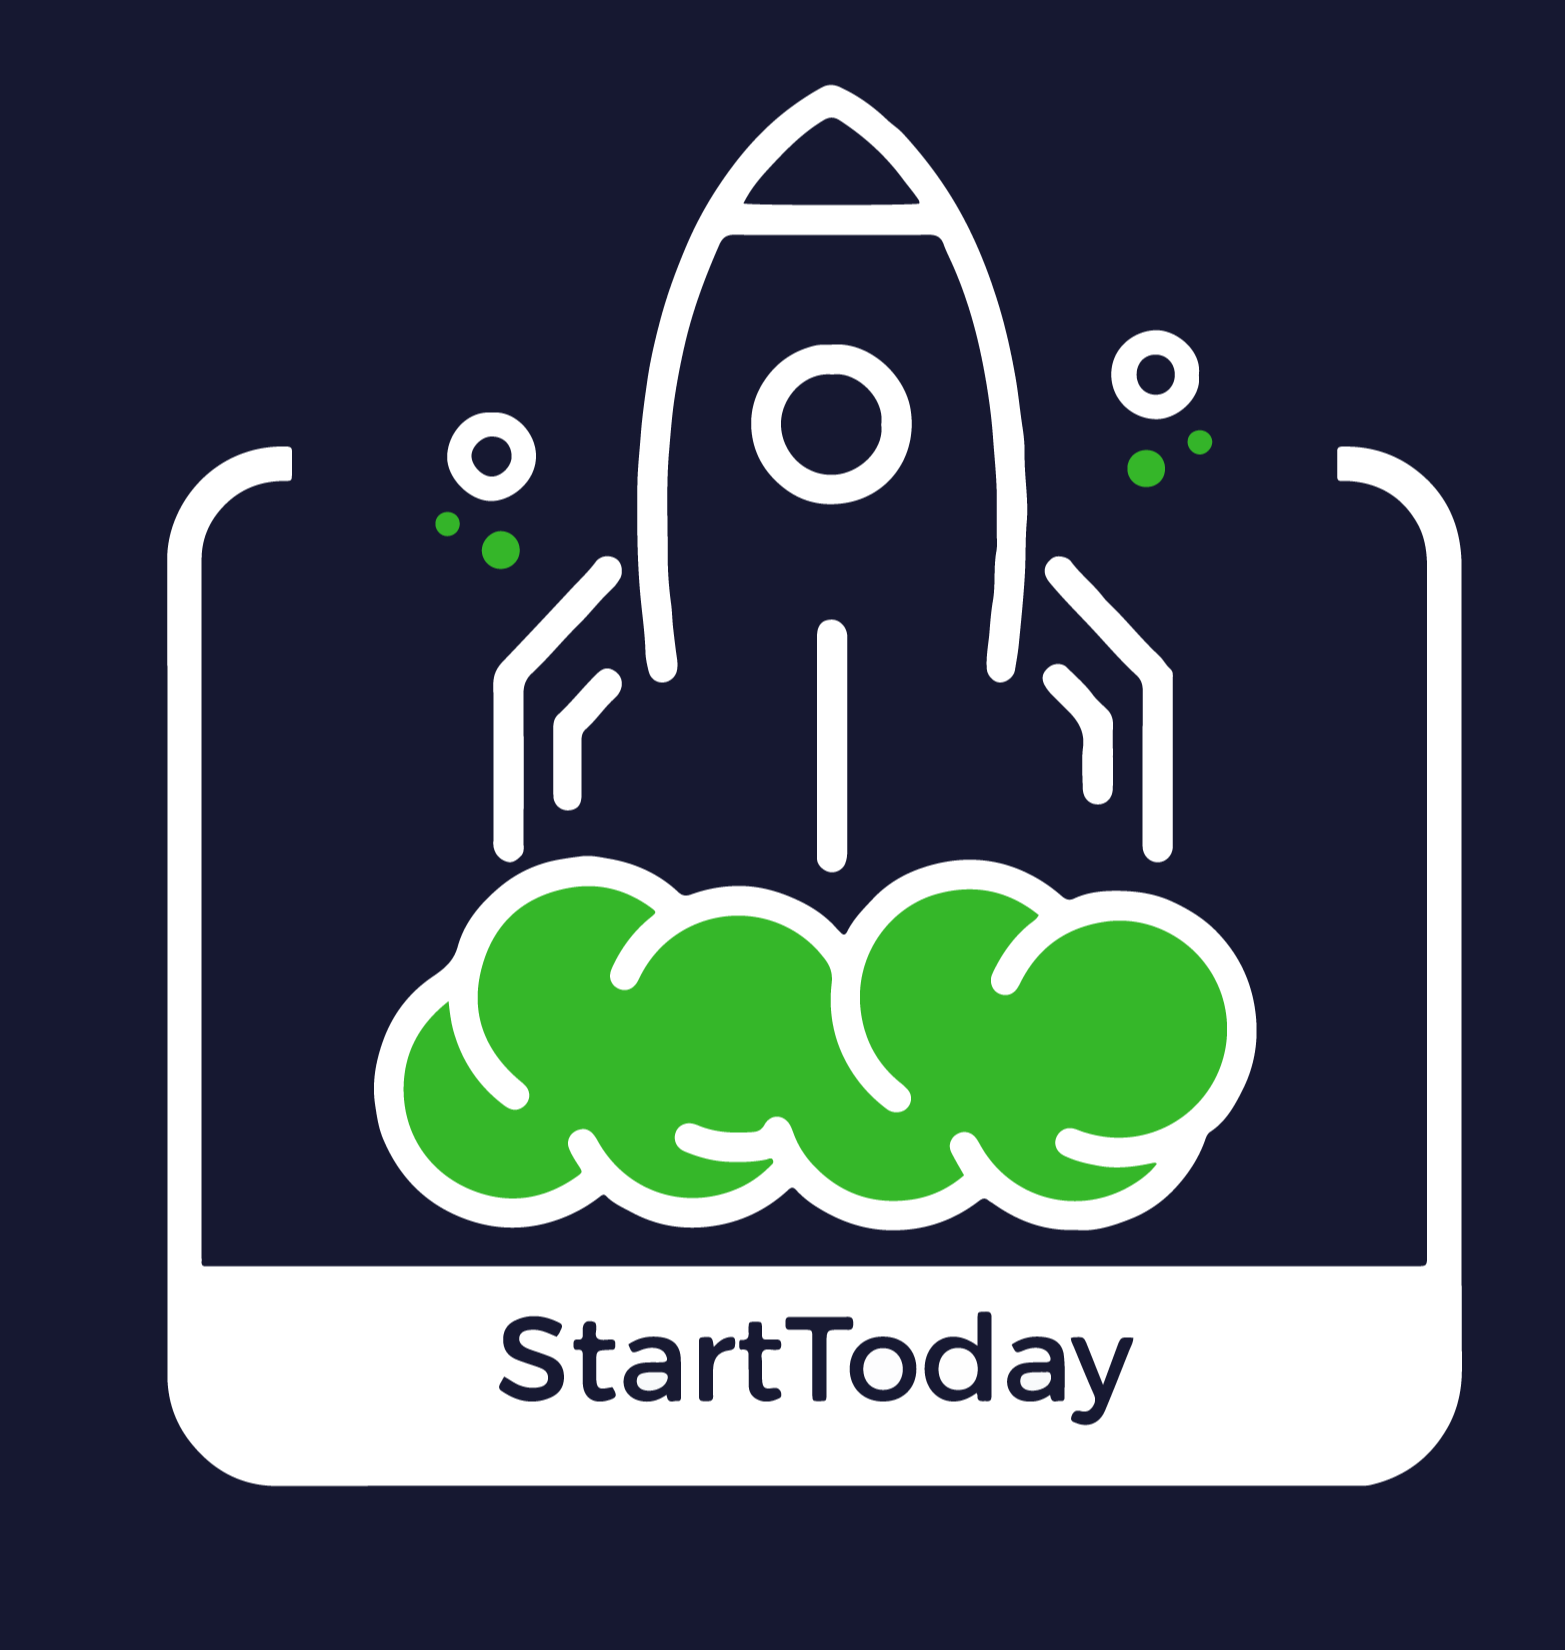 The StartToday